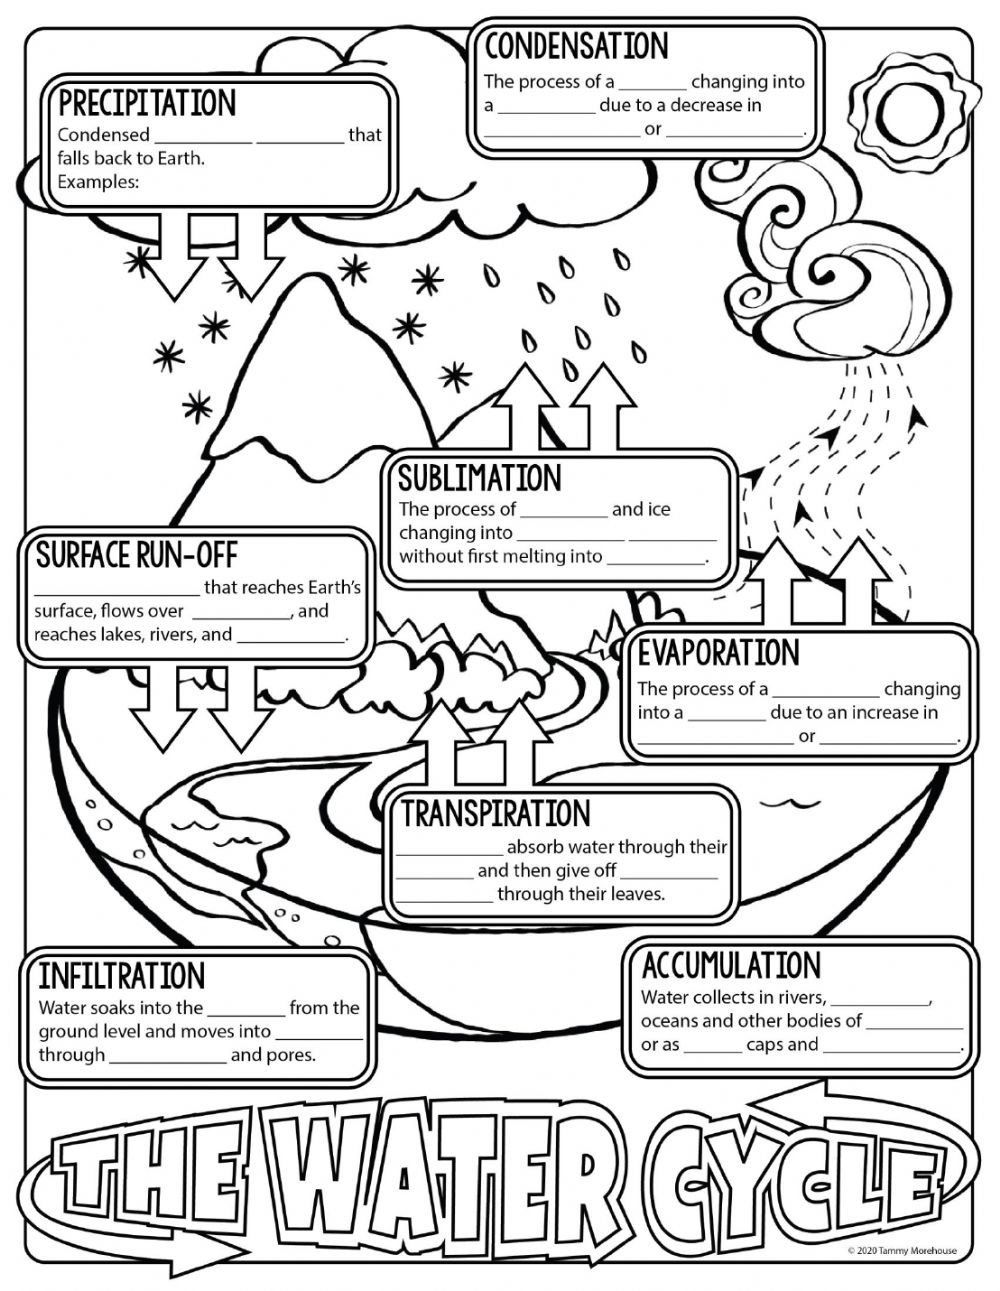 Water Cycle Worksheet Pdf the Water Cycle Notes Interactive Worksheet